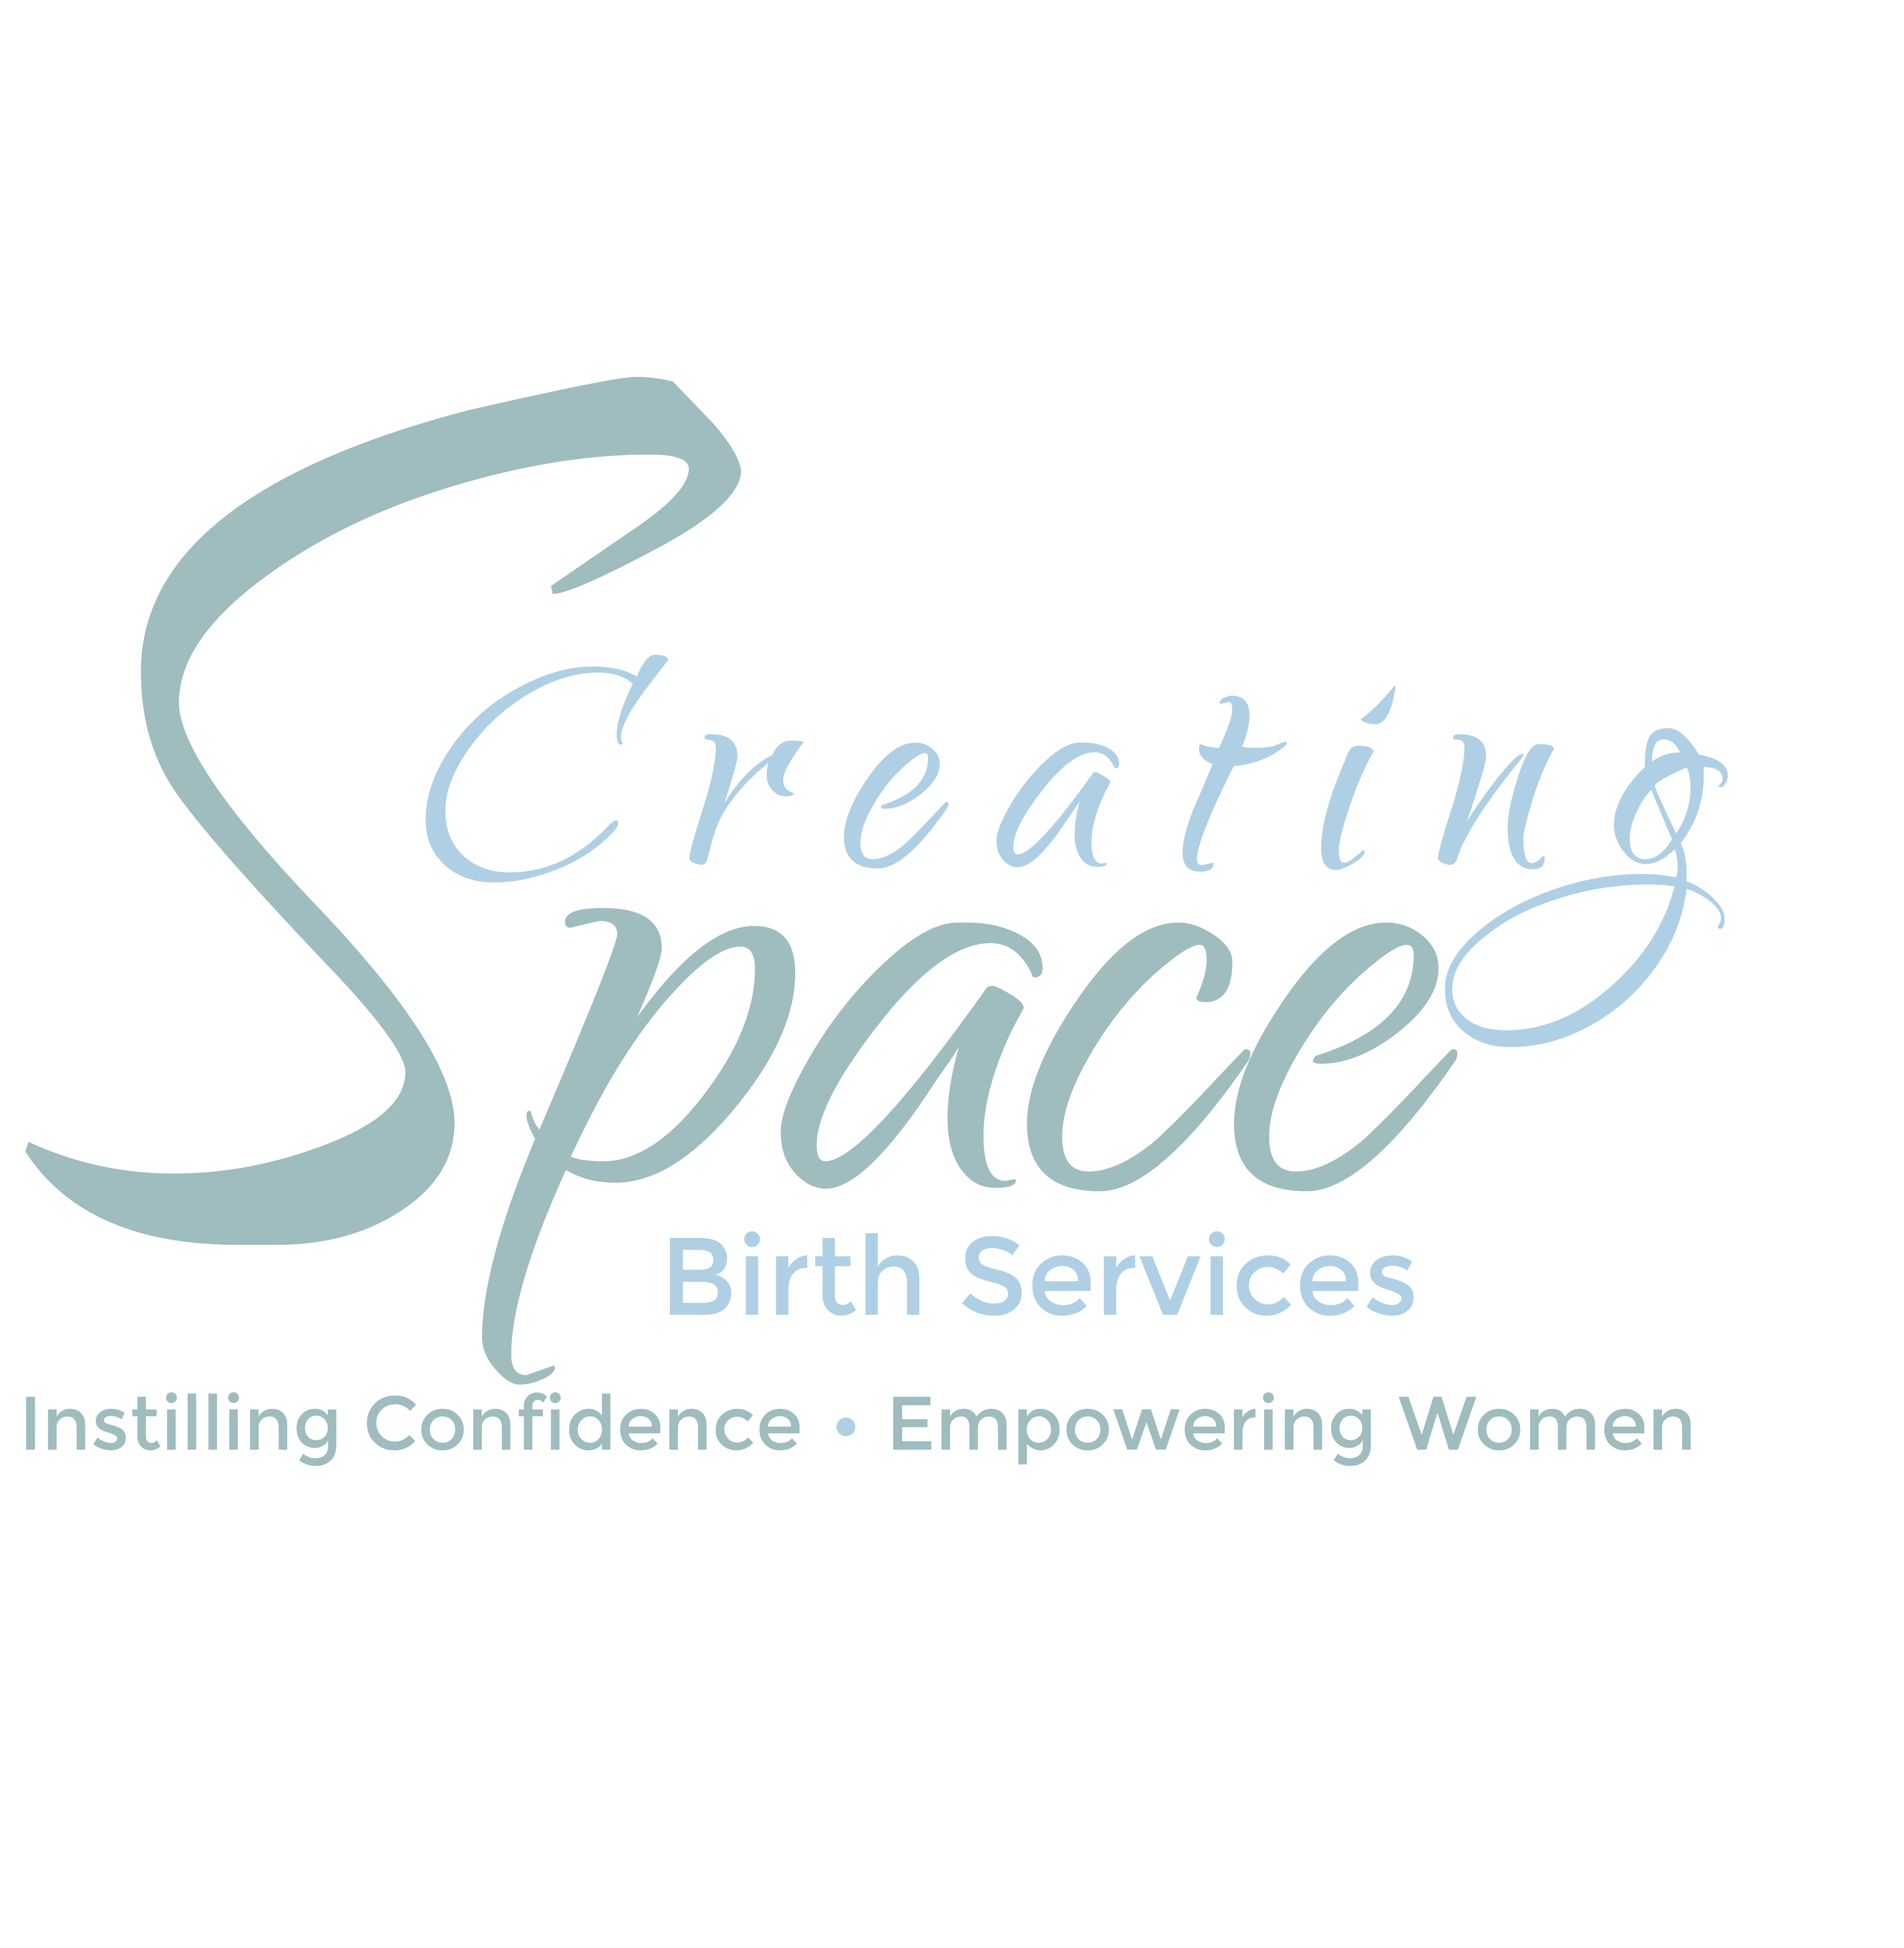 Birth doula support creating space birth services creating space birth services aiddatafo Image collections